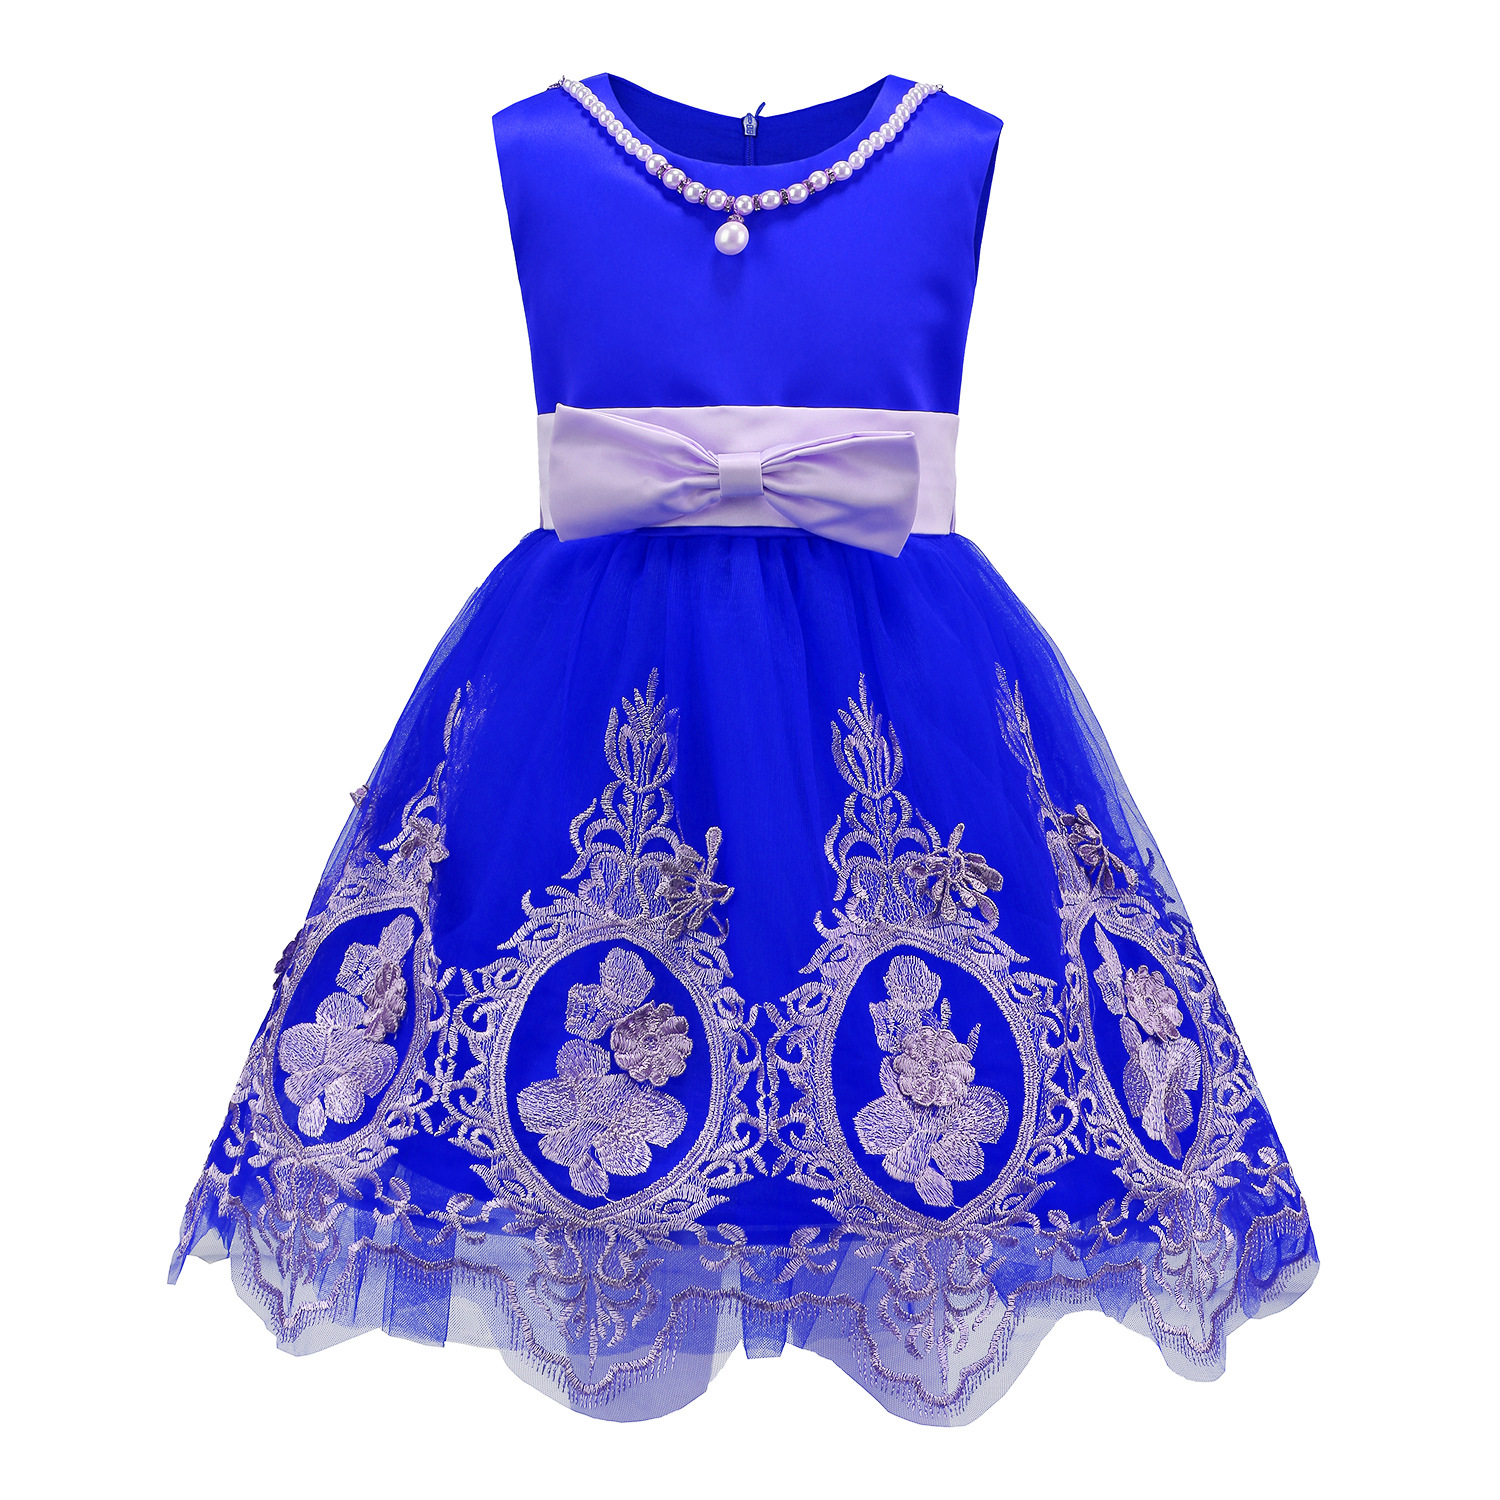 DO DOWER Girls party dresses age 3to12Y children lace embroidery ...